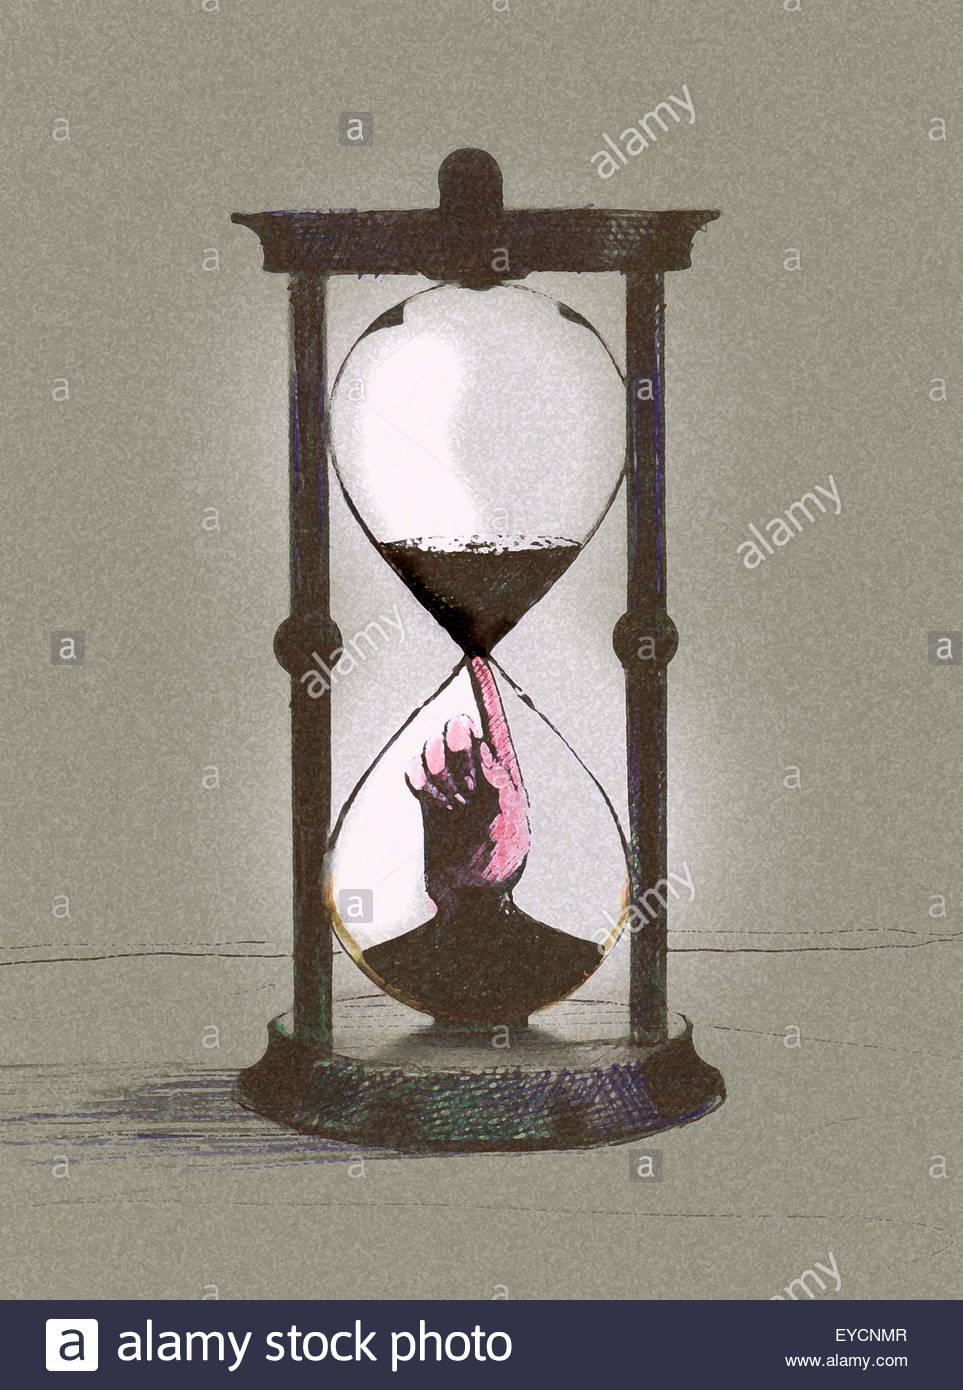 Hand inside of hourglass stopping time running out - Stock Image